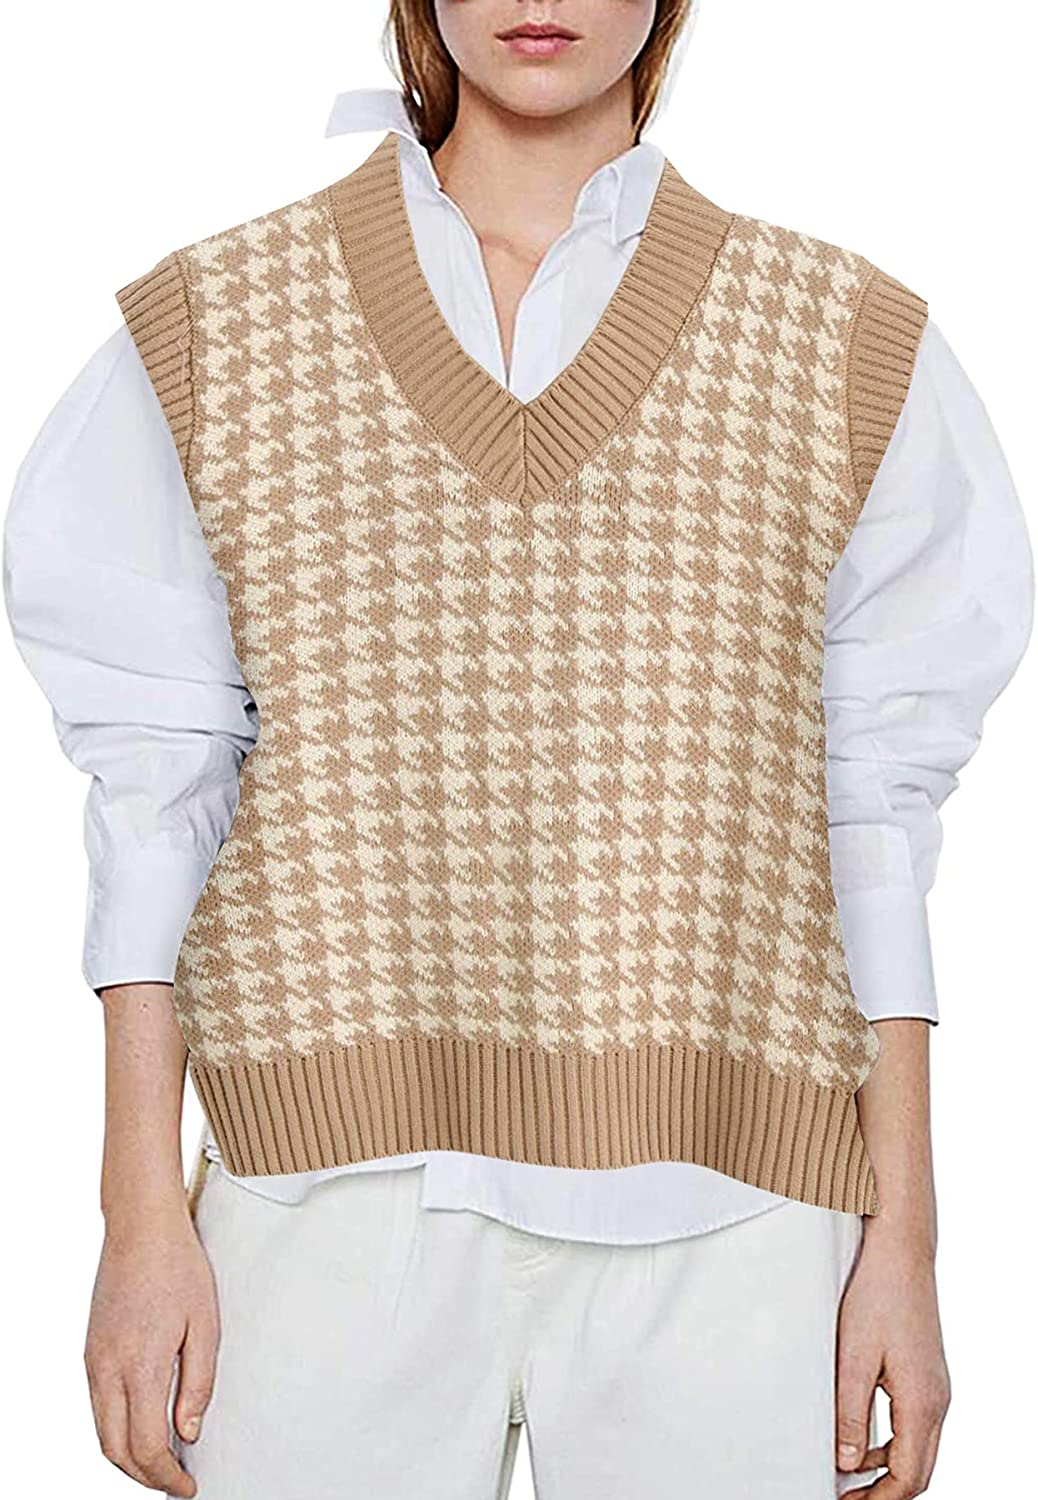 Oversized Houndstooth Knitted Women Sweater Vest V Neck Vintage Pullover Tank Tops at  Women's Clothing store